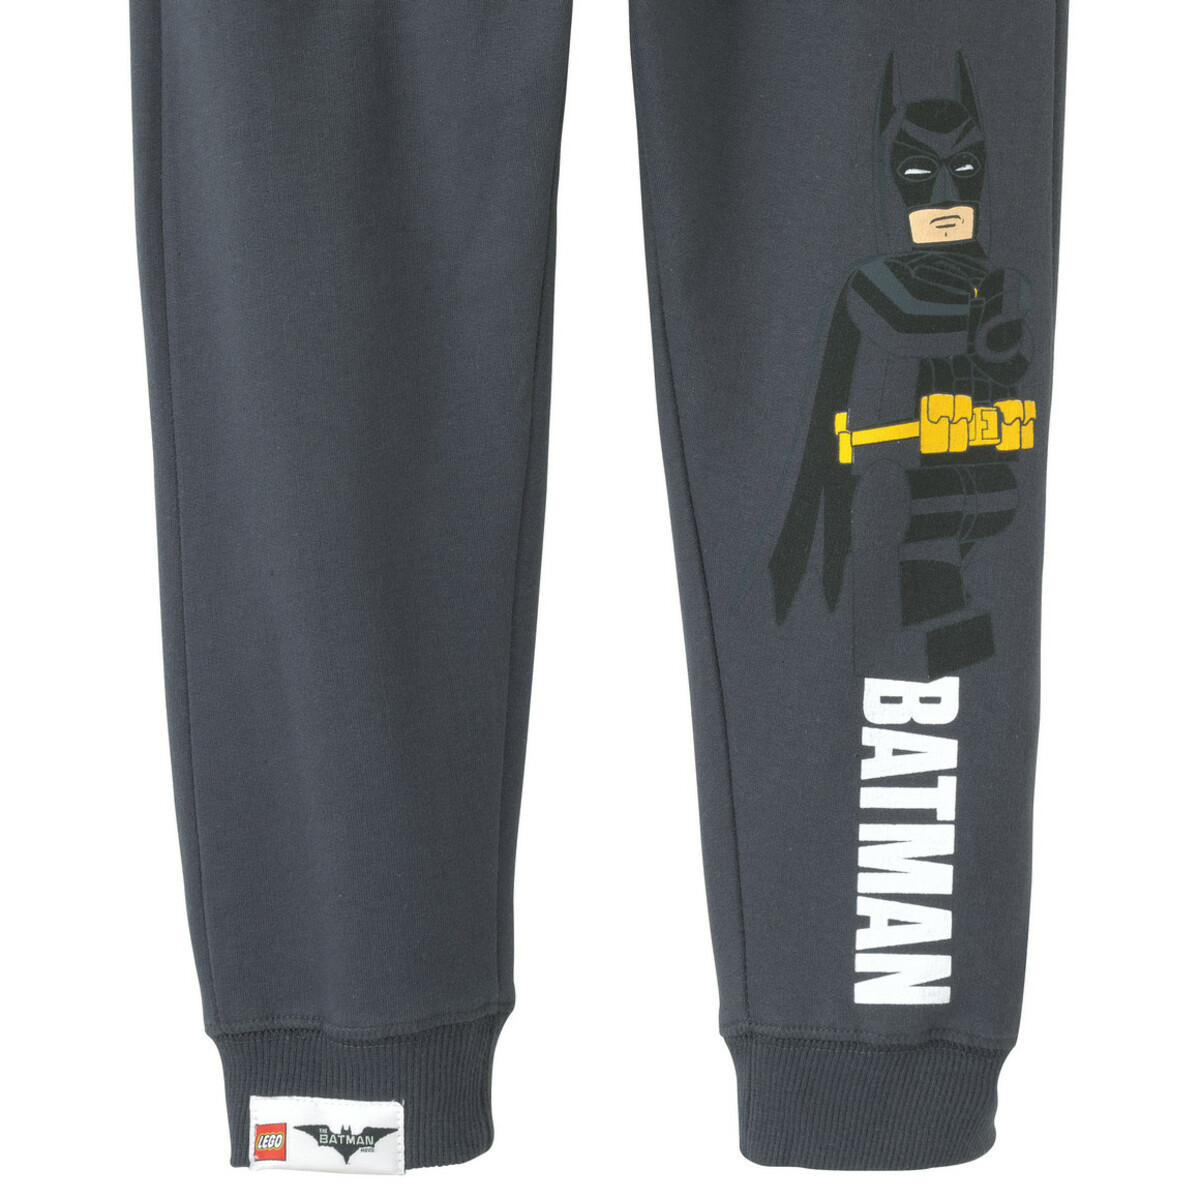 Bild 3 von LEGO The Batman Movie Jogginghose mit Print